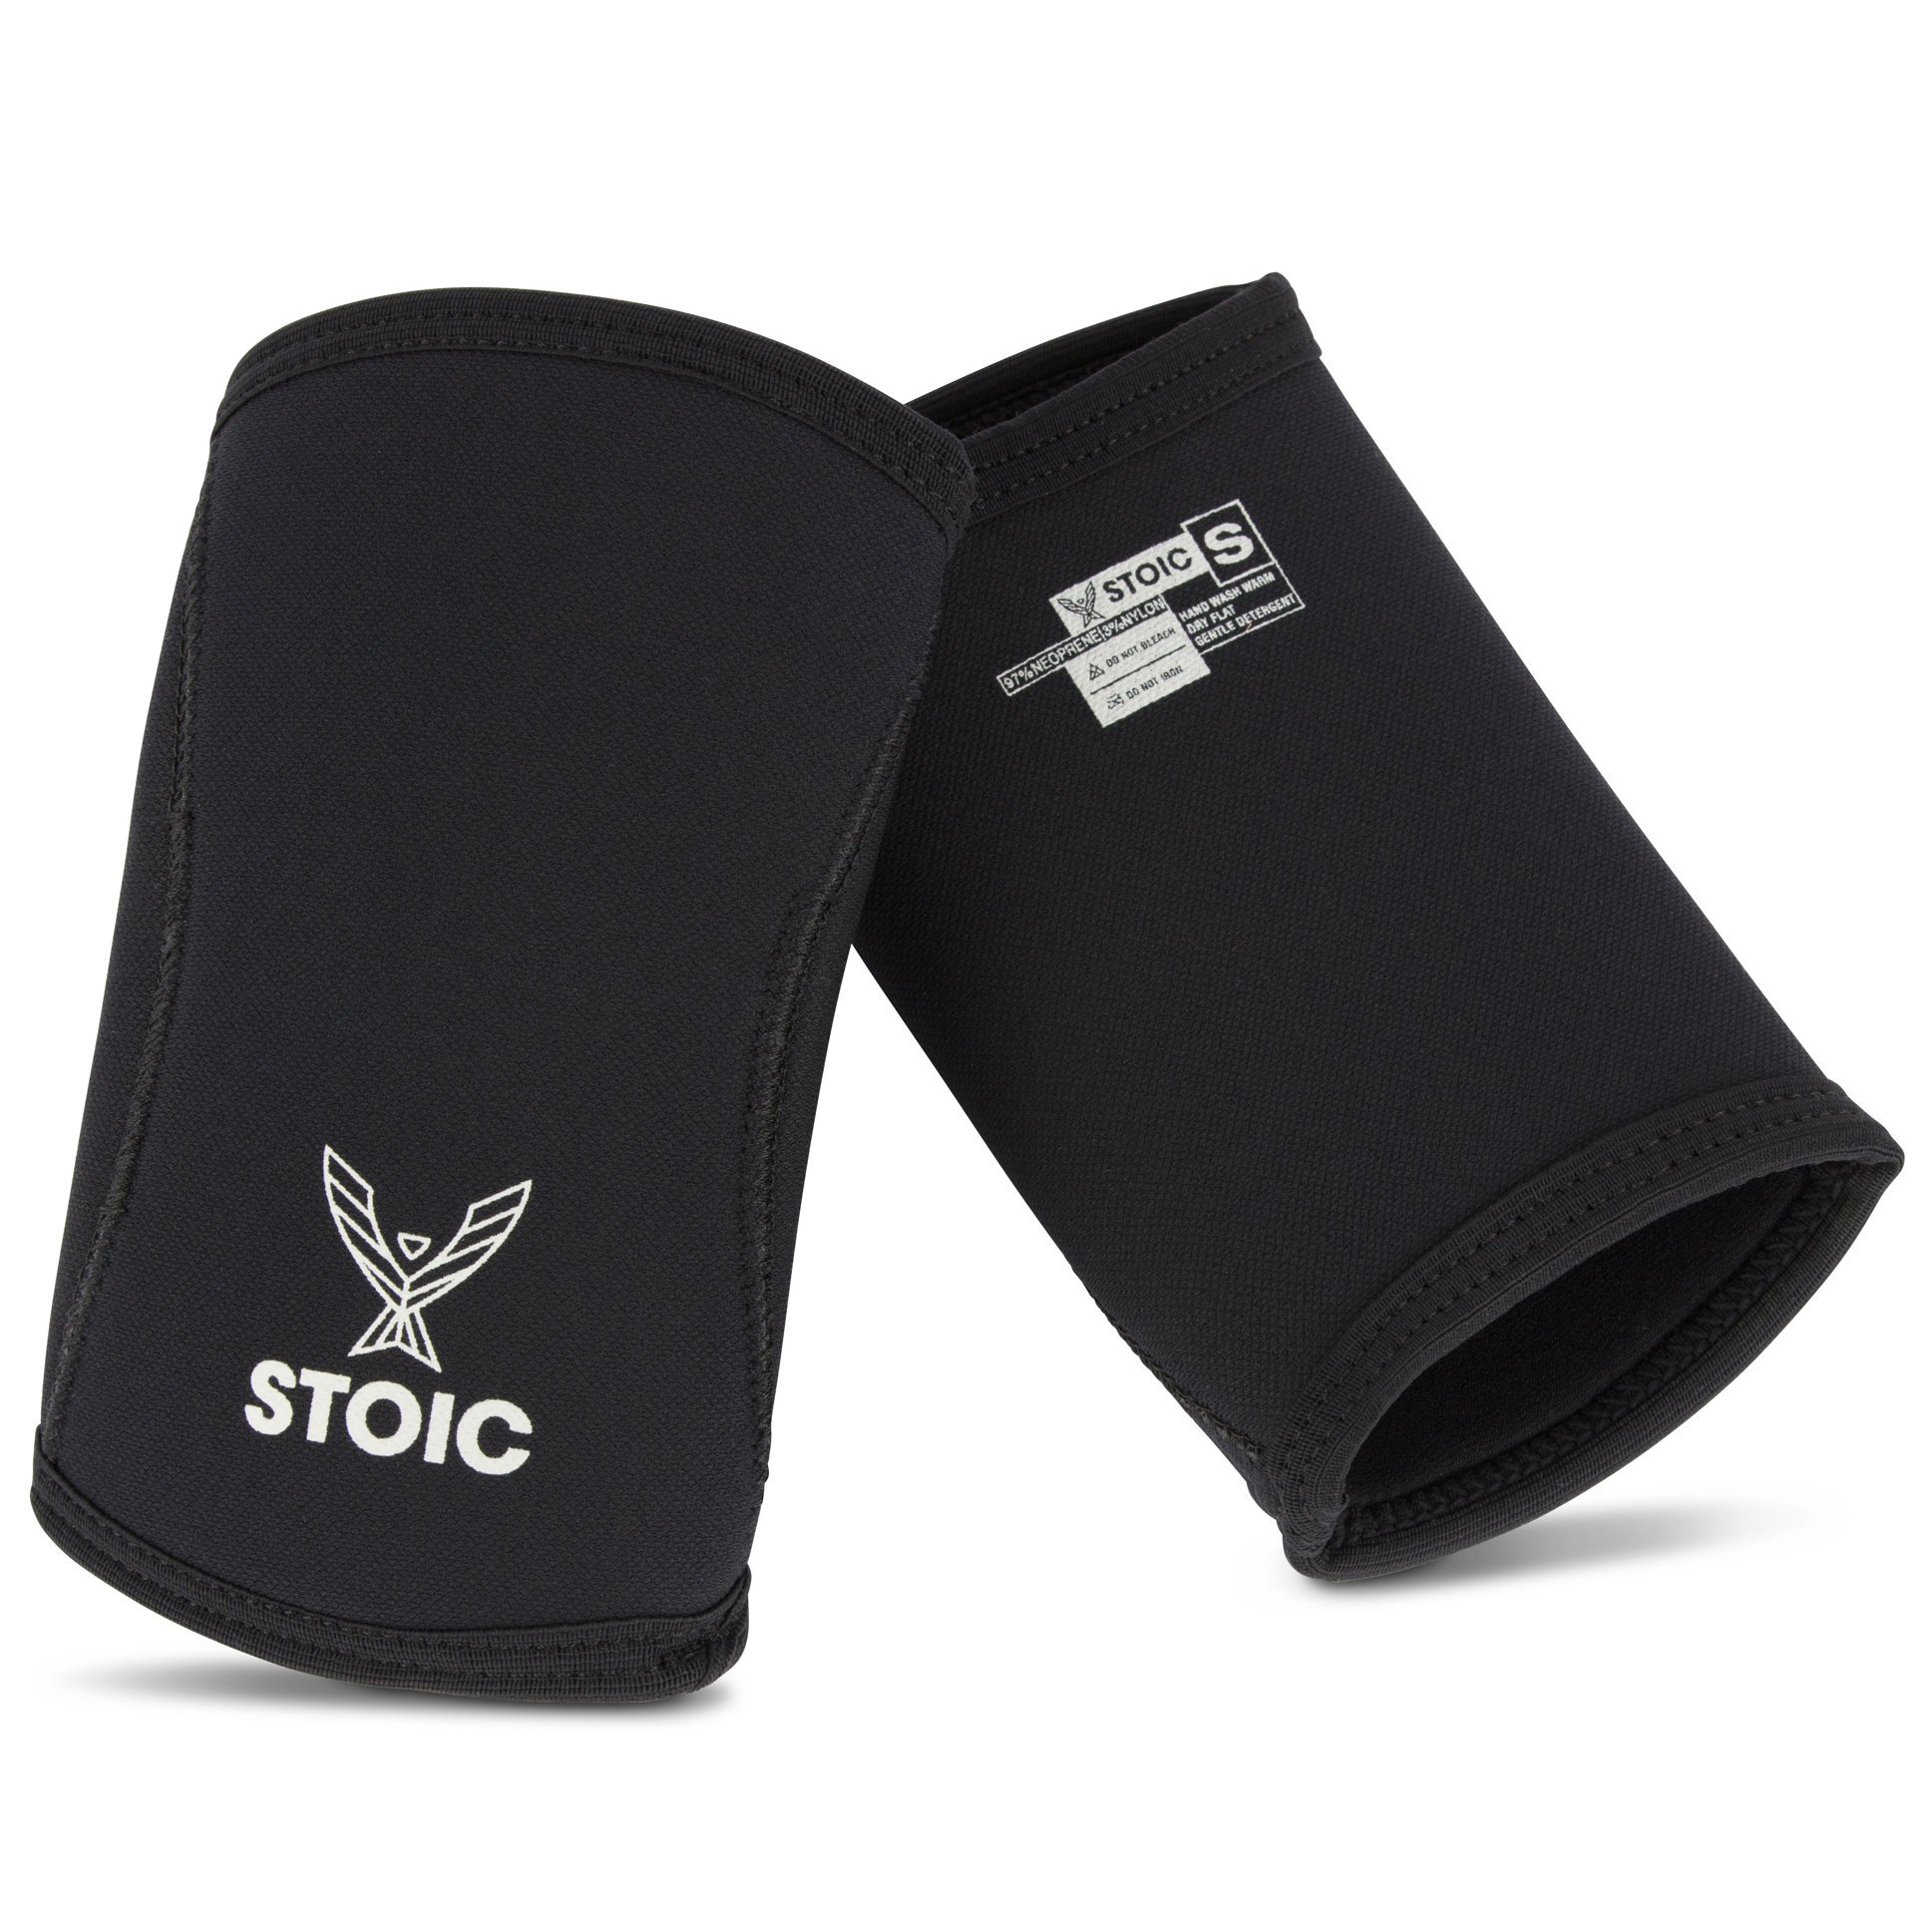 Stoic Elbow Sleeves for Powerlifting - 7mm + 5mm Thick Neoprene Sleeve for Bodybuilding, Weight Lifting Best for Squats, Cross Training, Strongman Professional Quality & Ultra Heavy Duty (Pair)